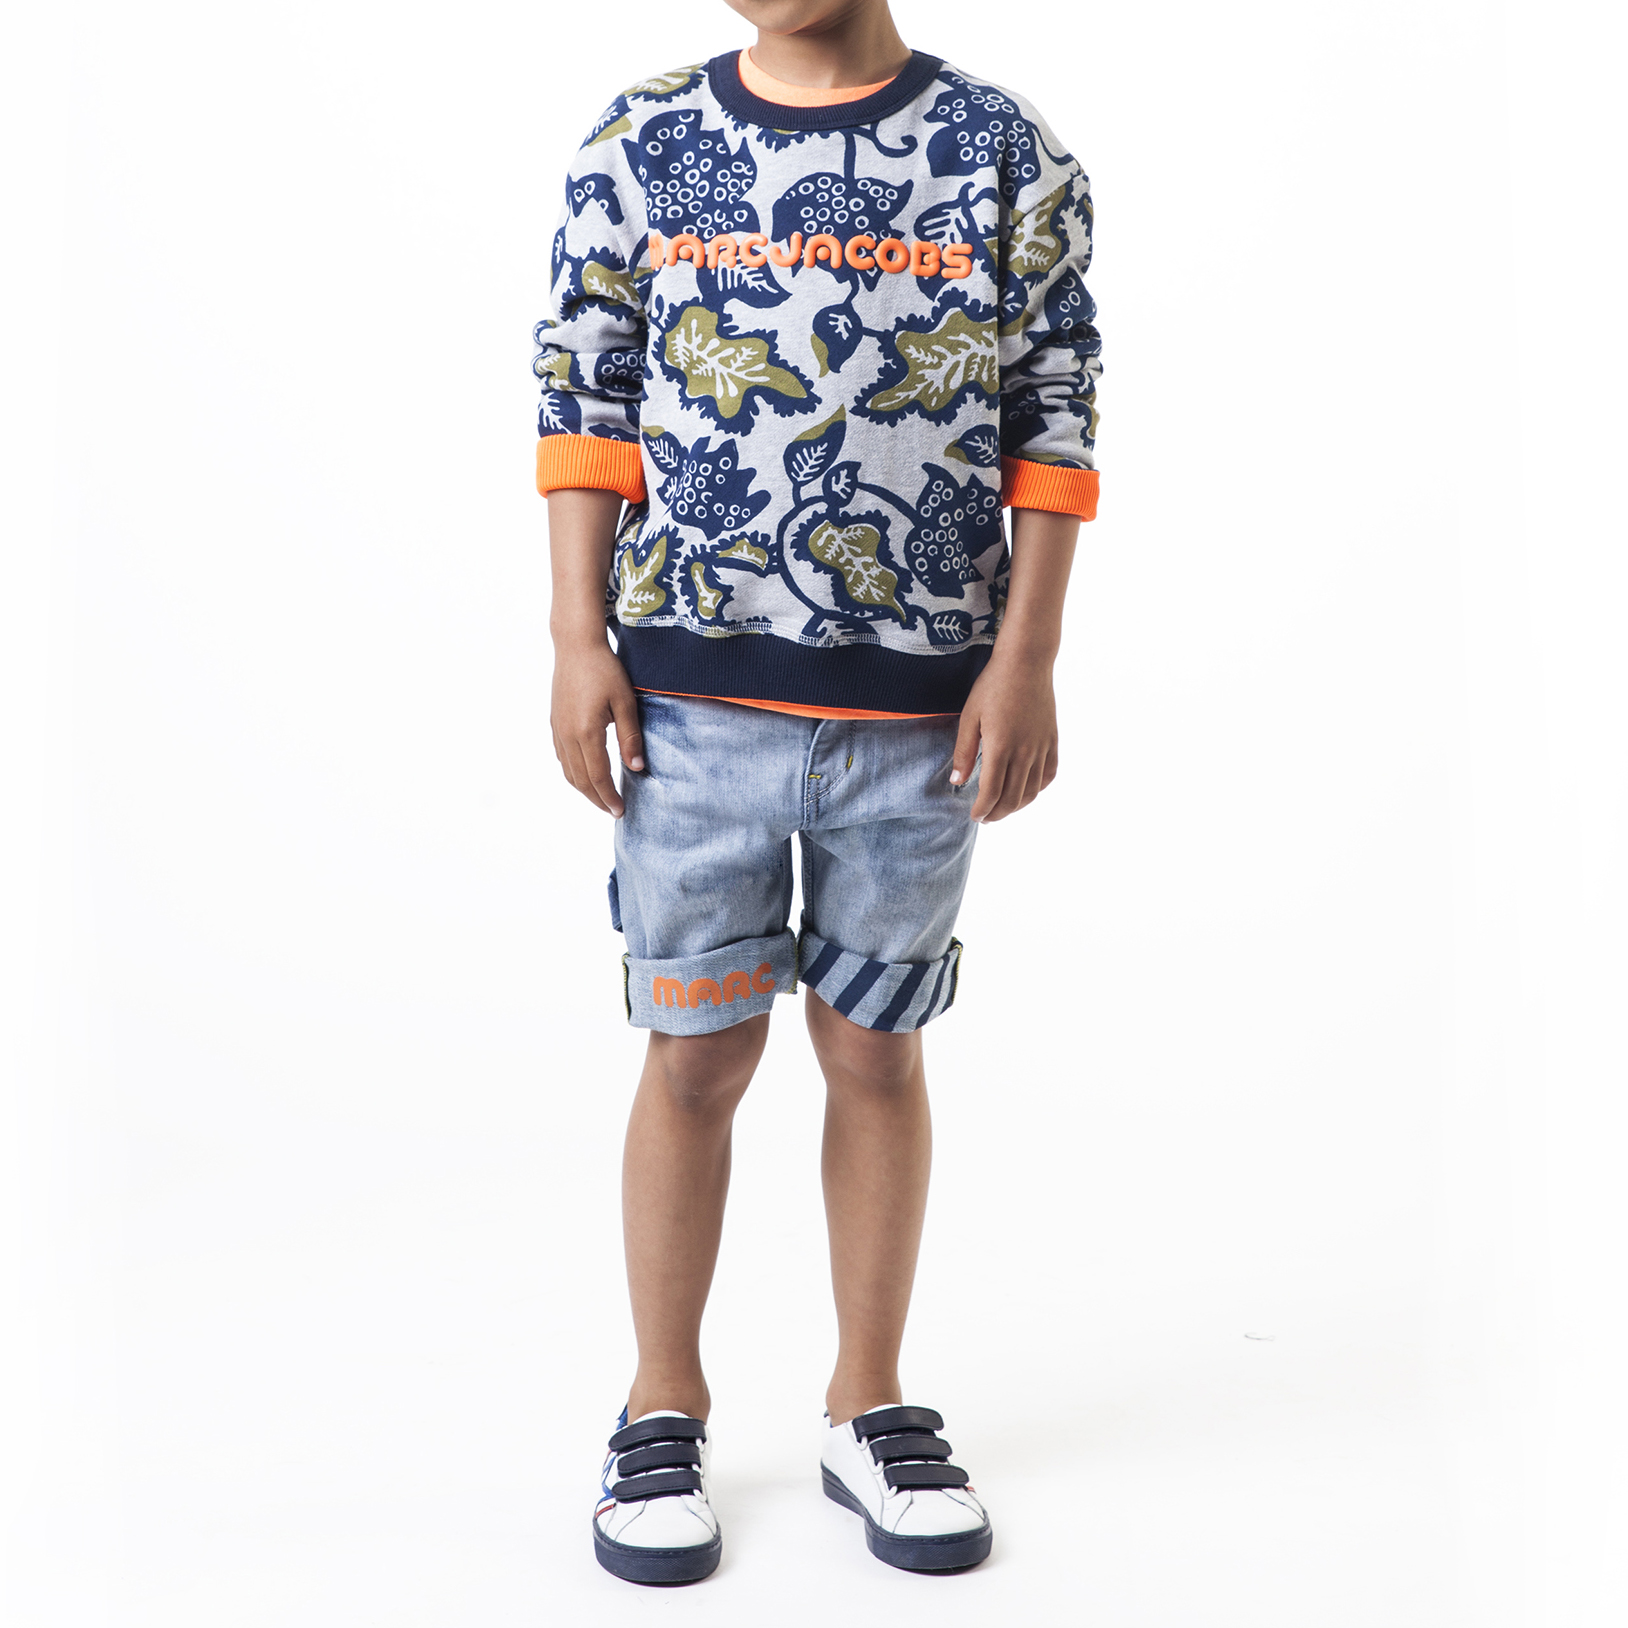 Faded denim bermuda shorts THE MARC JACOBS for BOY